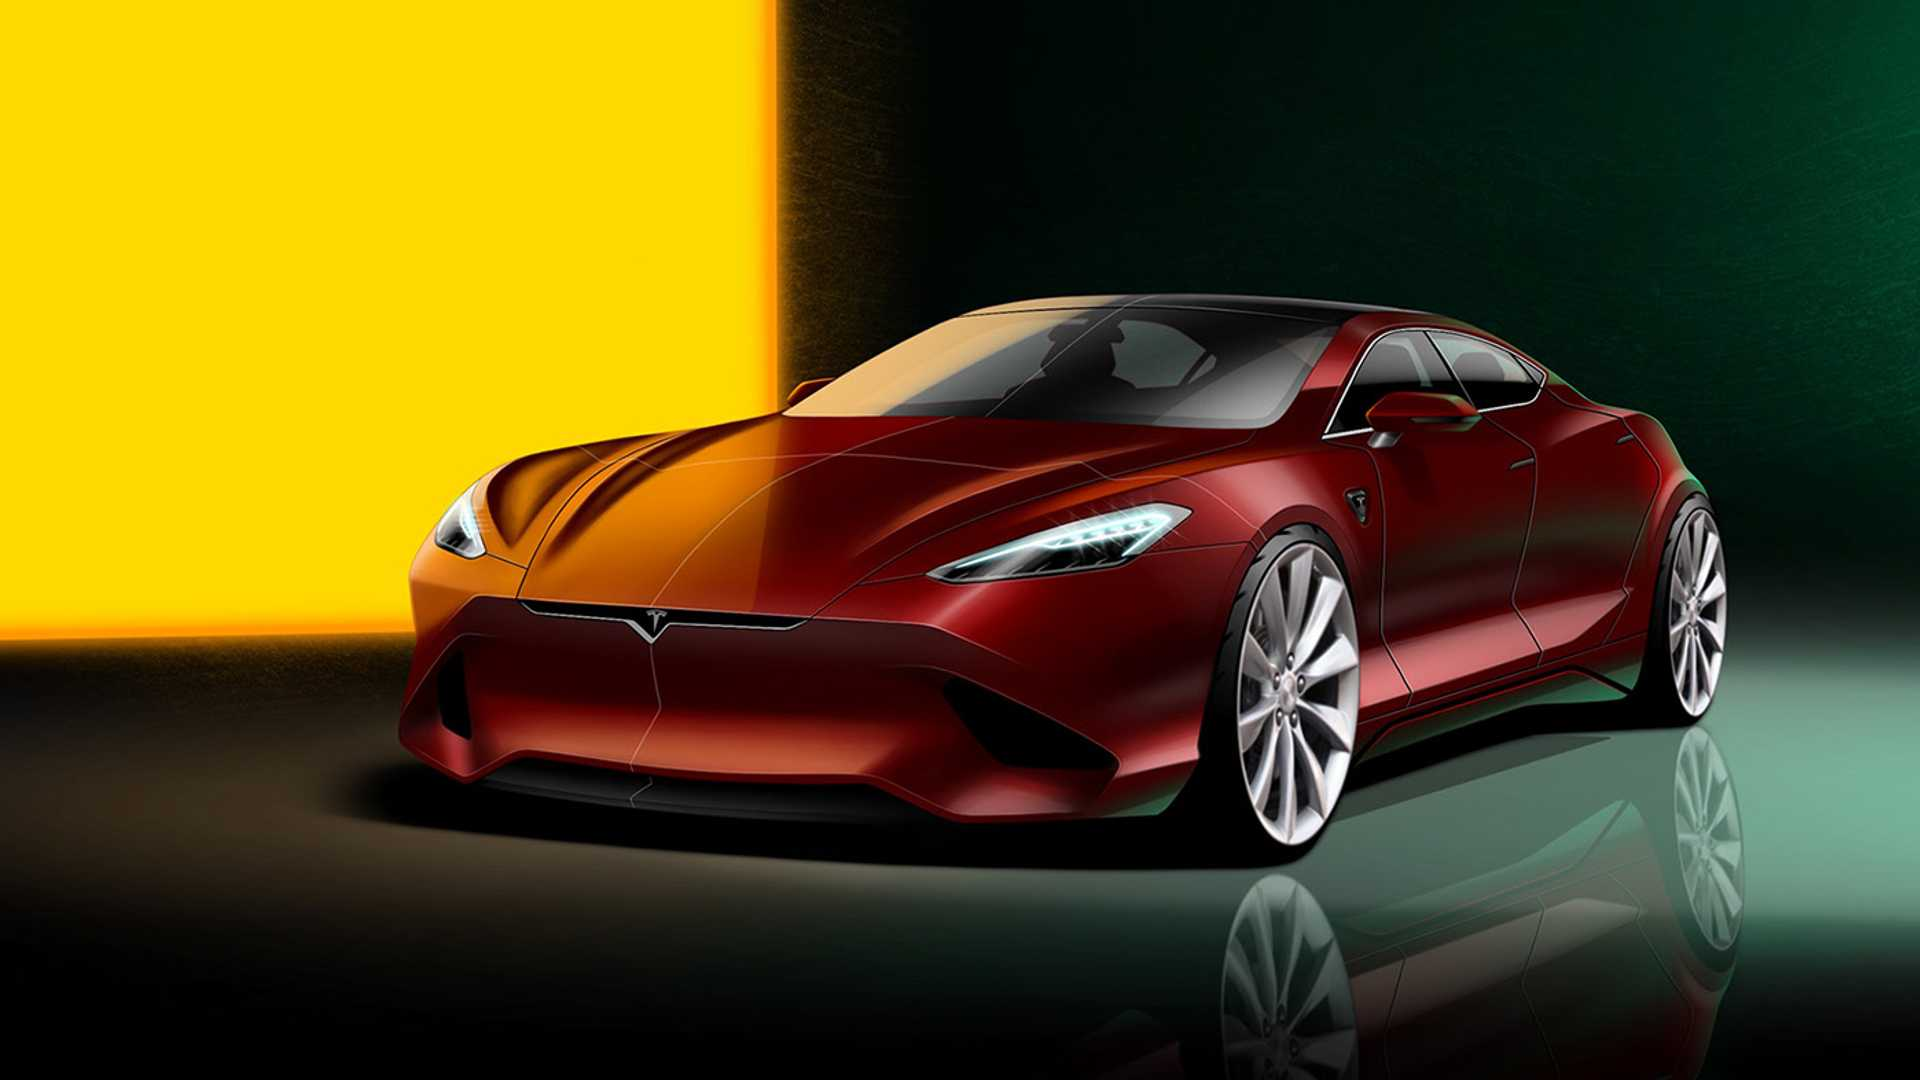 Hows this for a next gen Tesla Model S redesign 1920x1080